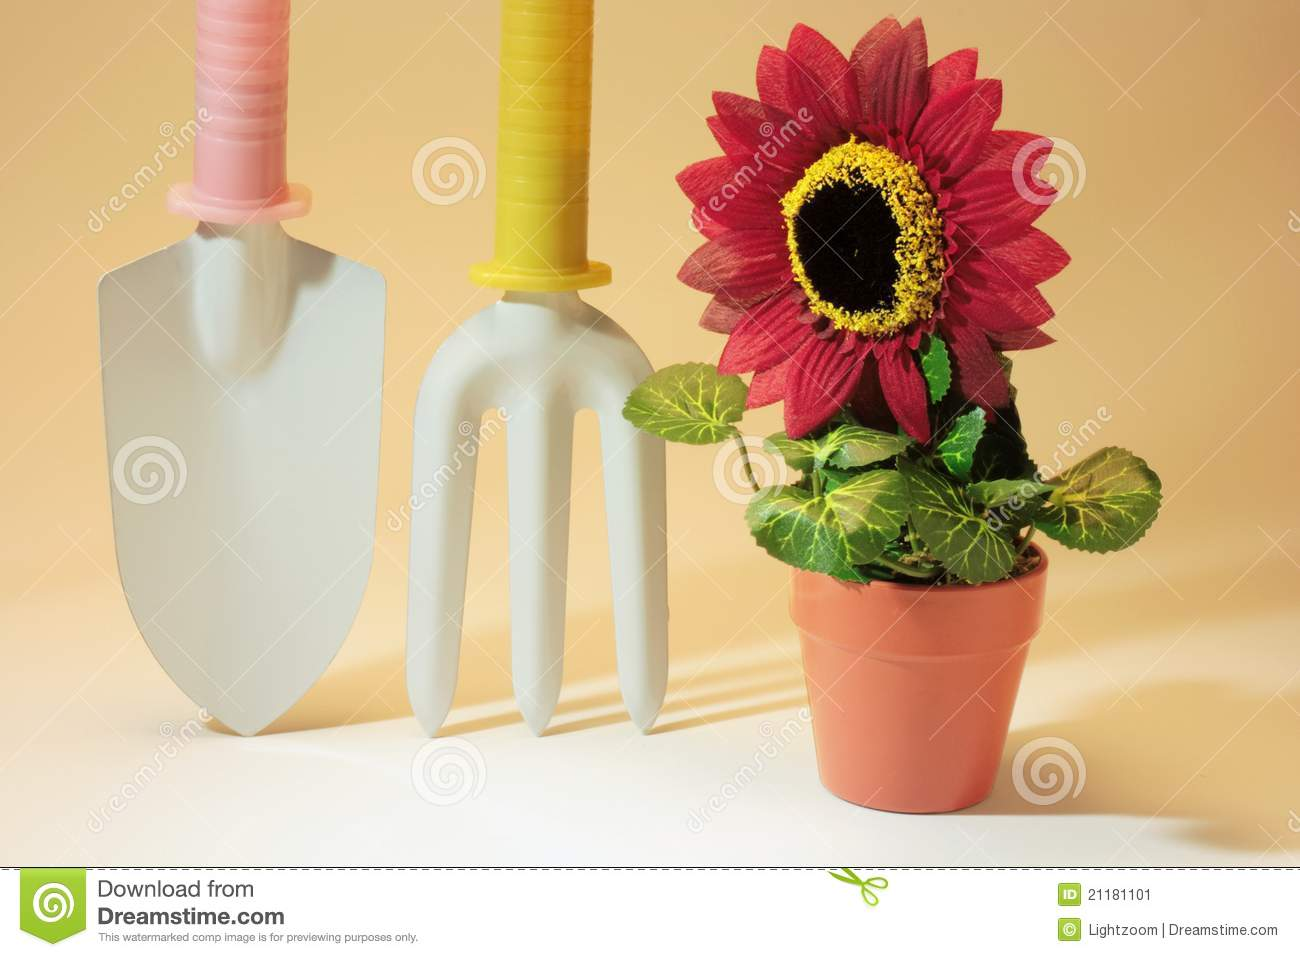 Gardening tools and Artificial Potplant